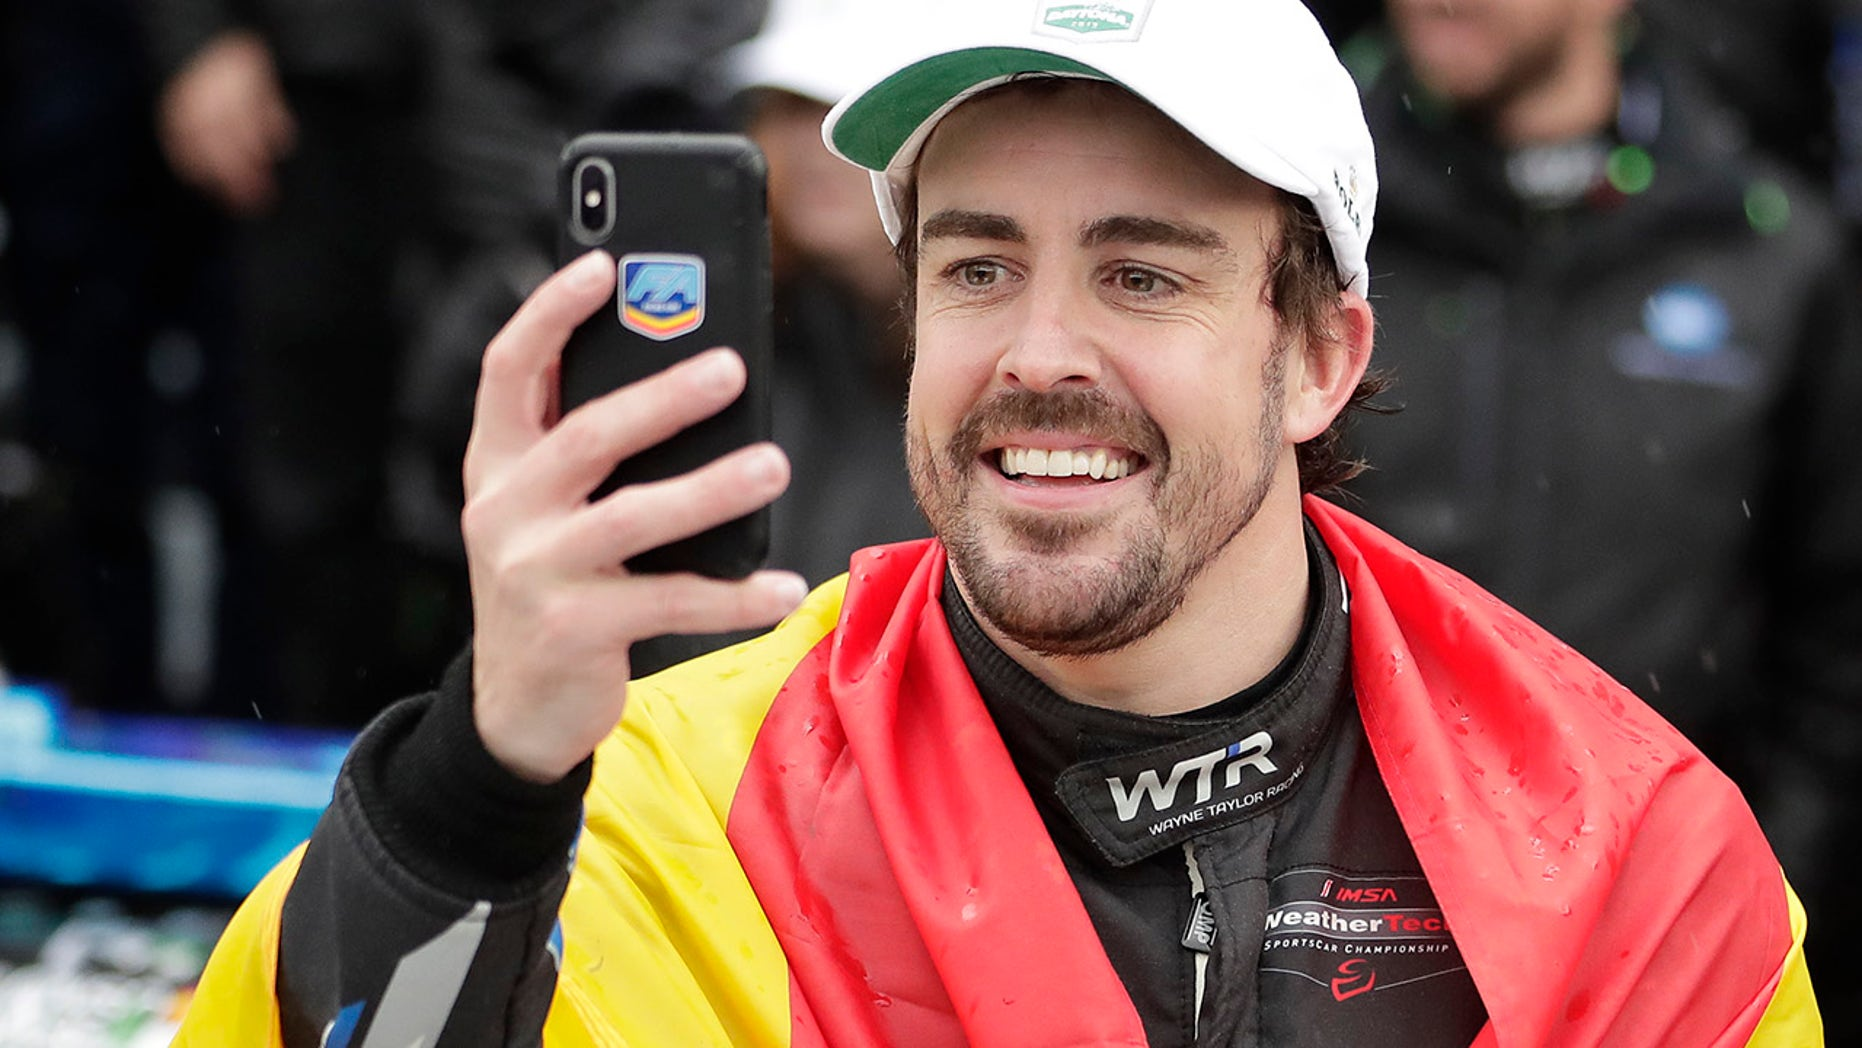 Alonso takes aim at Indy 500 after rainy Daytona win